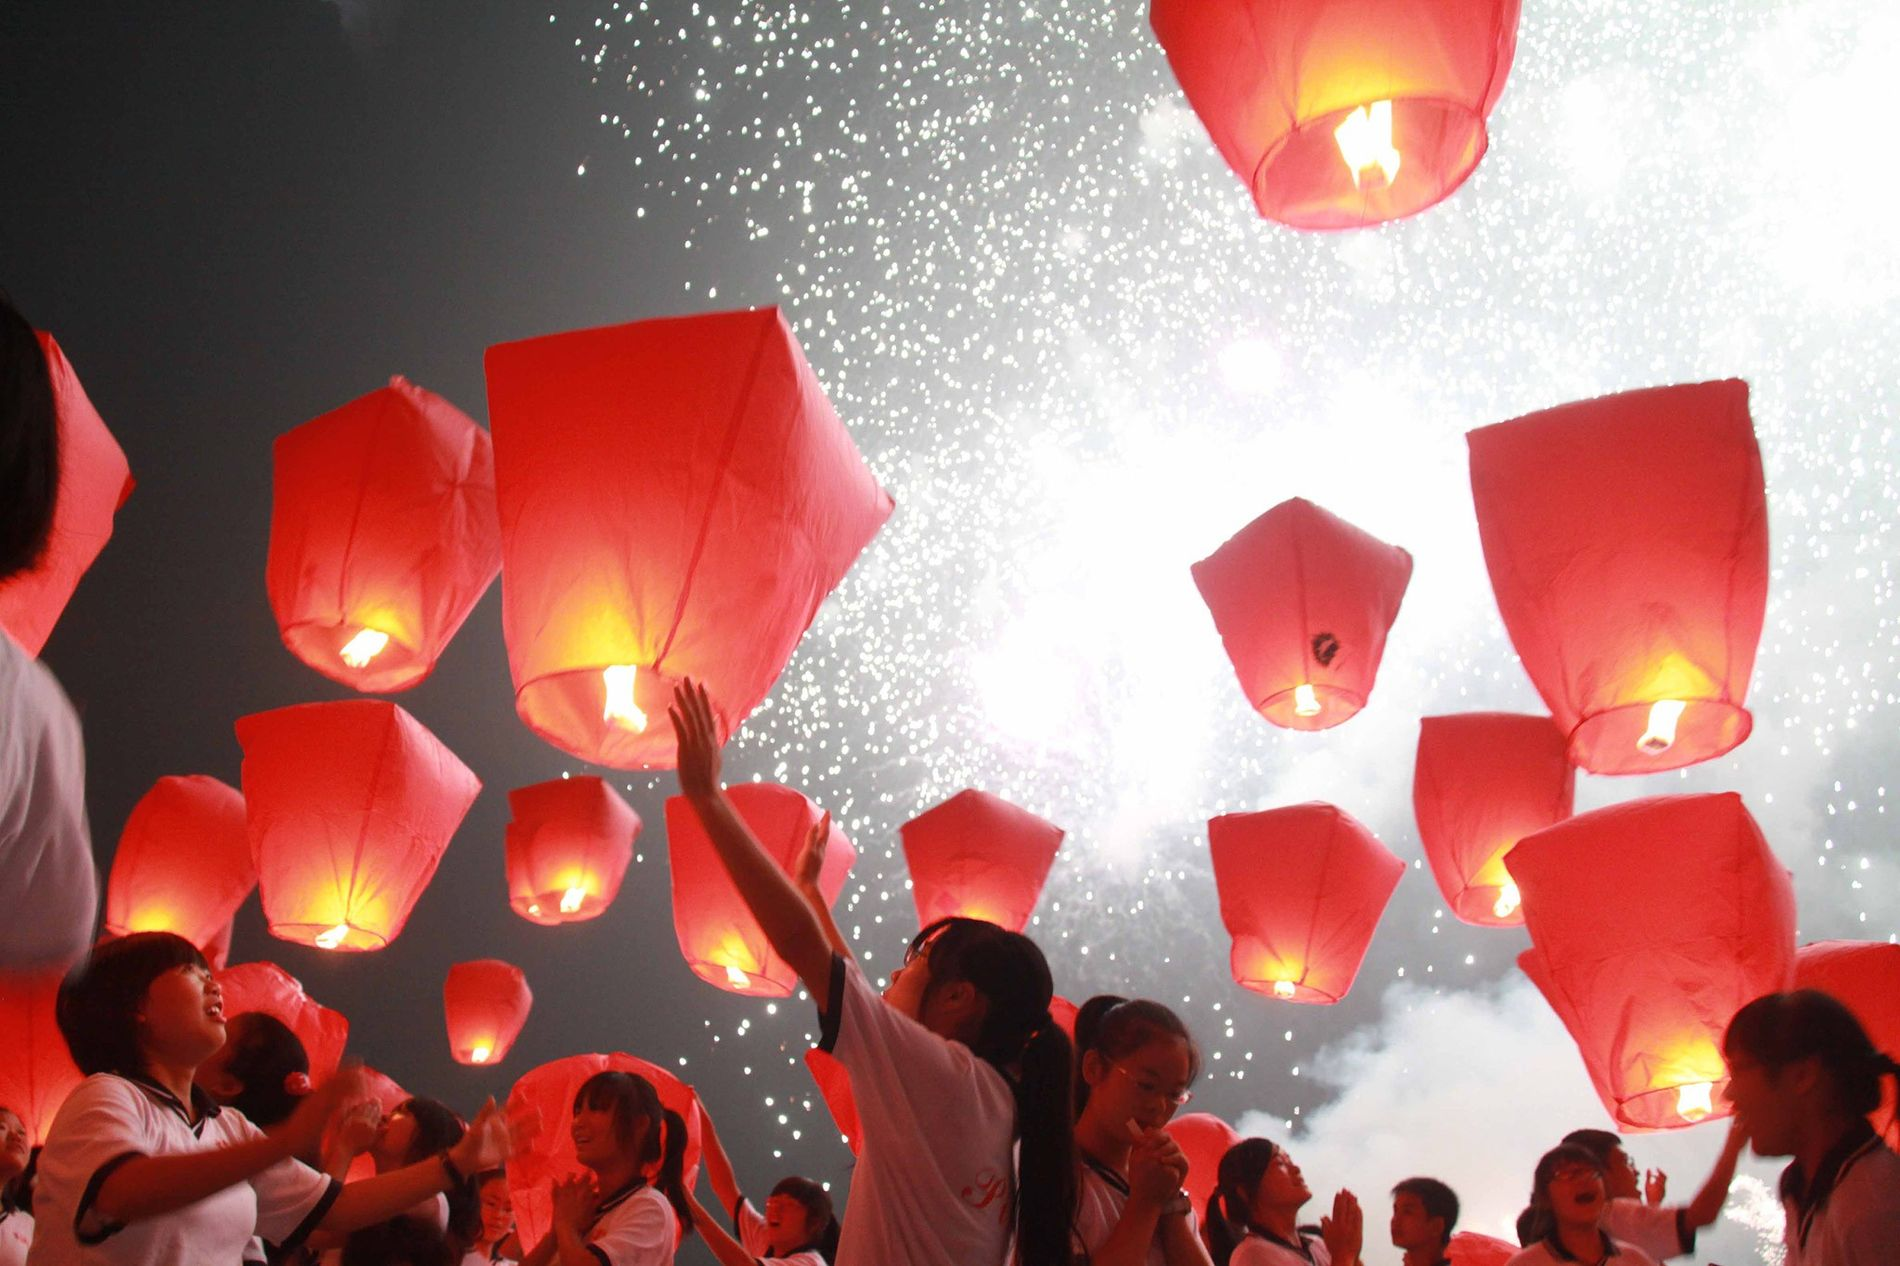 In Yichun, China, a village near Shanghai, locals light up prayer lanterns during the Chinese Moon Festival. The festival falls on September 13 and is celebrated all over China.